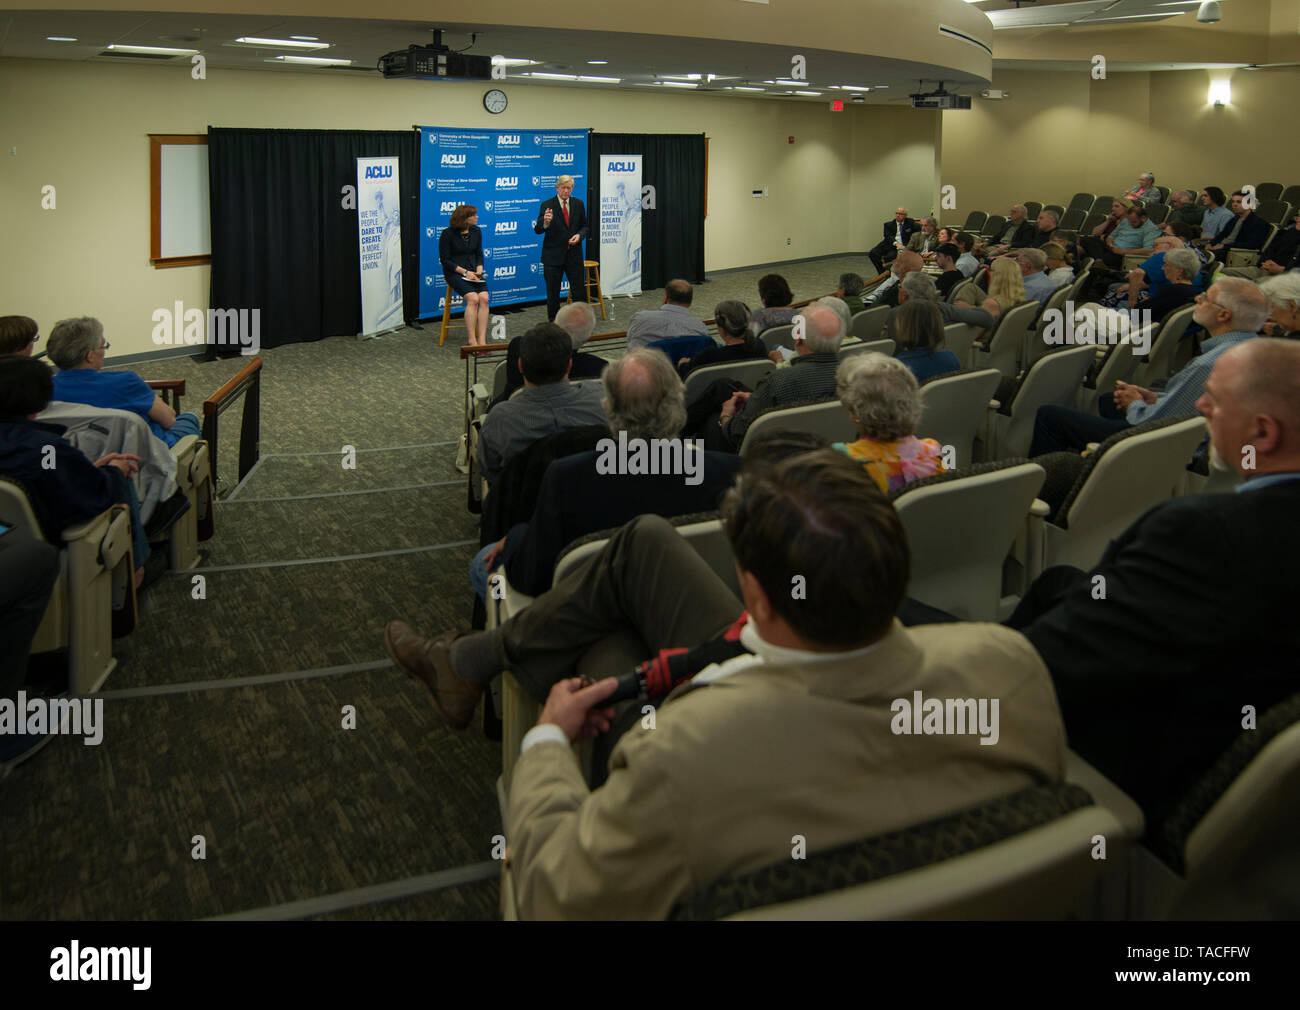 Concord, USA. 23rd May, 2019. Concord, NH, USA May 23 2019. Republican Presidential candidate and former Massachusetts Governor Bill Weld spoke to less than 100 people at the University of New Hampshire School of Law in Concord, NH. The event was organized by the New Hampshire American Civil Liberties Union (ACLU). Credit: Chuck Nacke/Alamy Live News Stock Photo